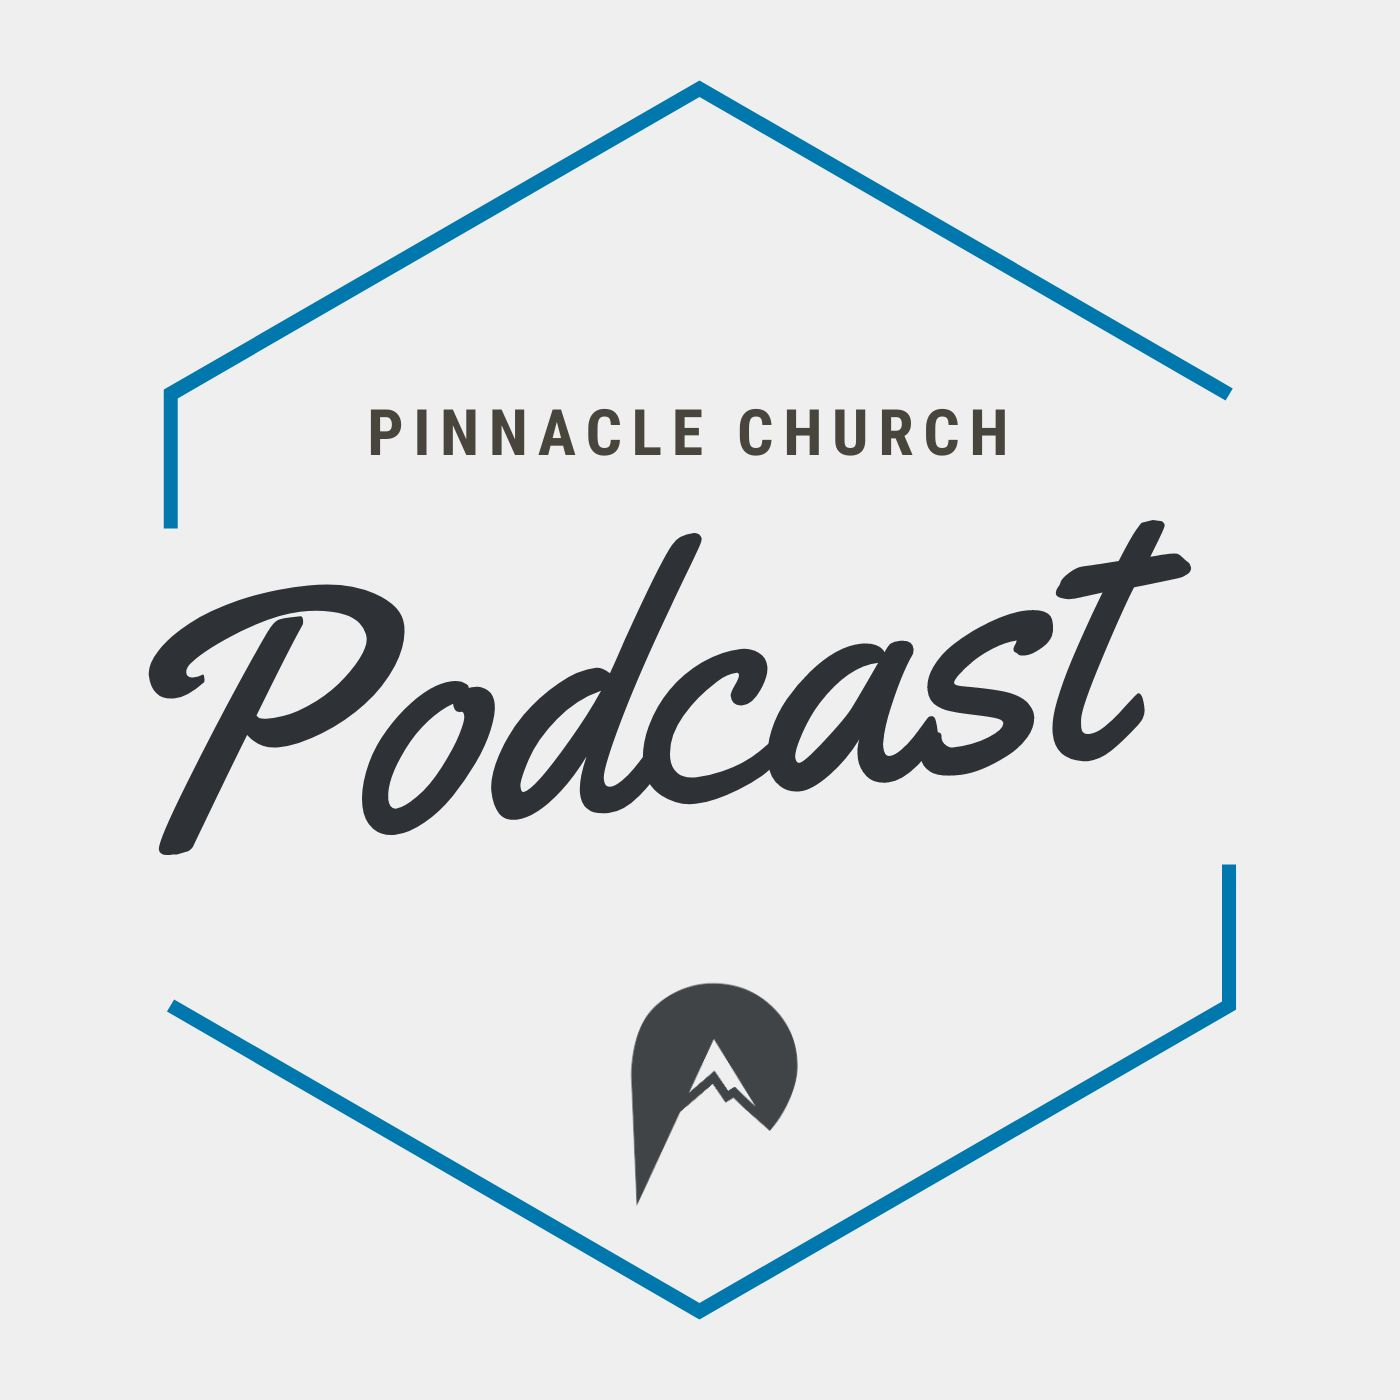 Pinnacle Church Podcast